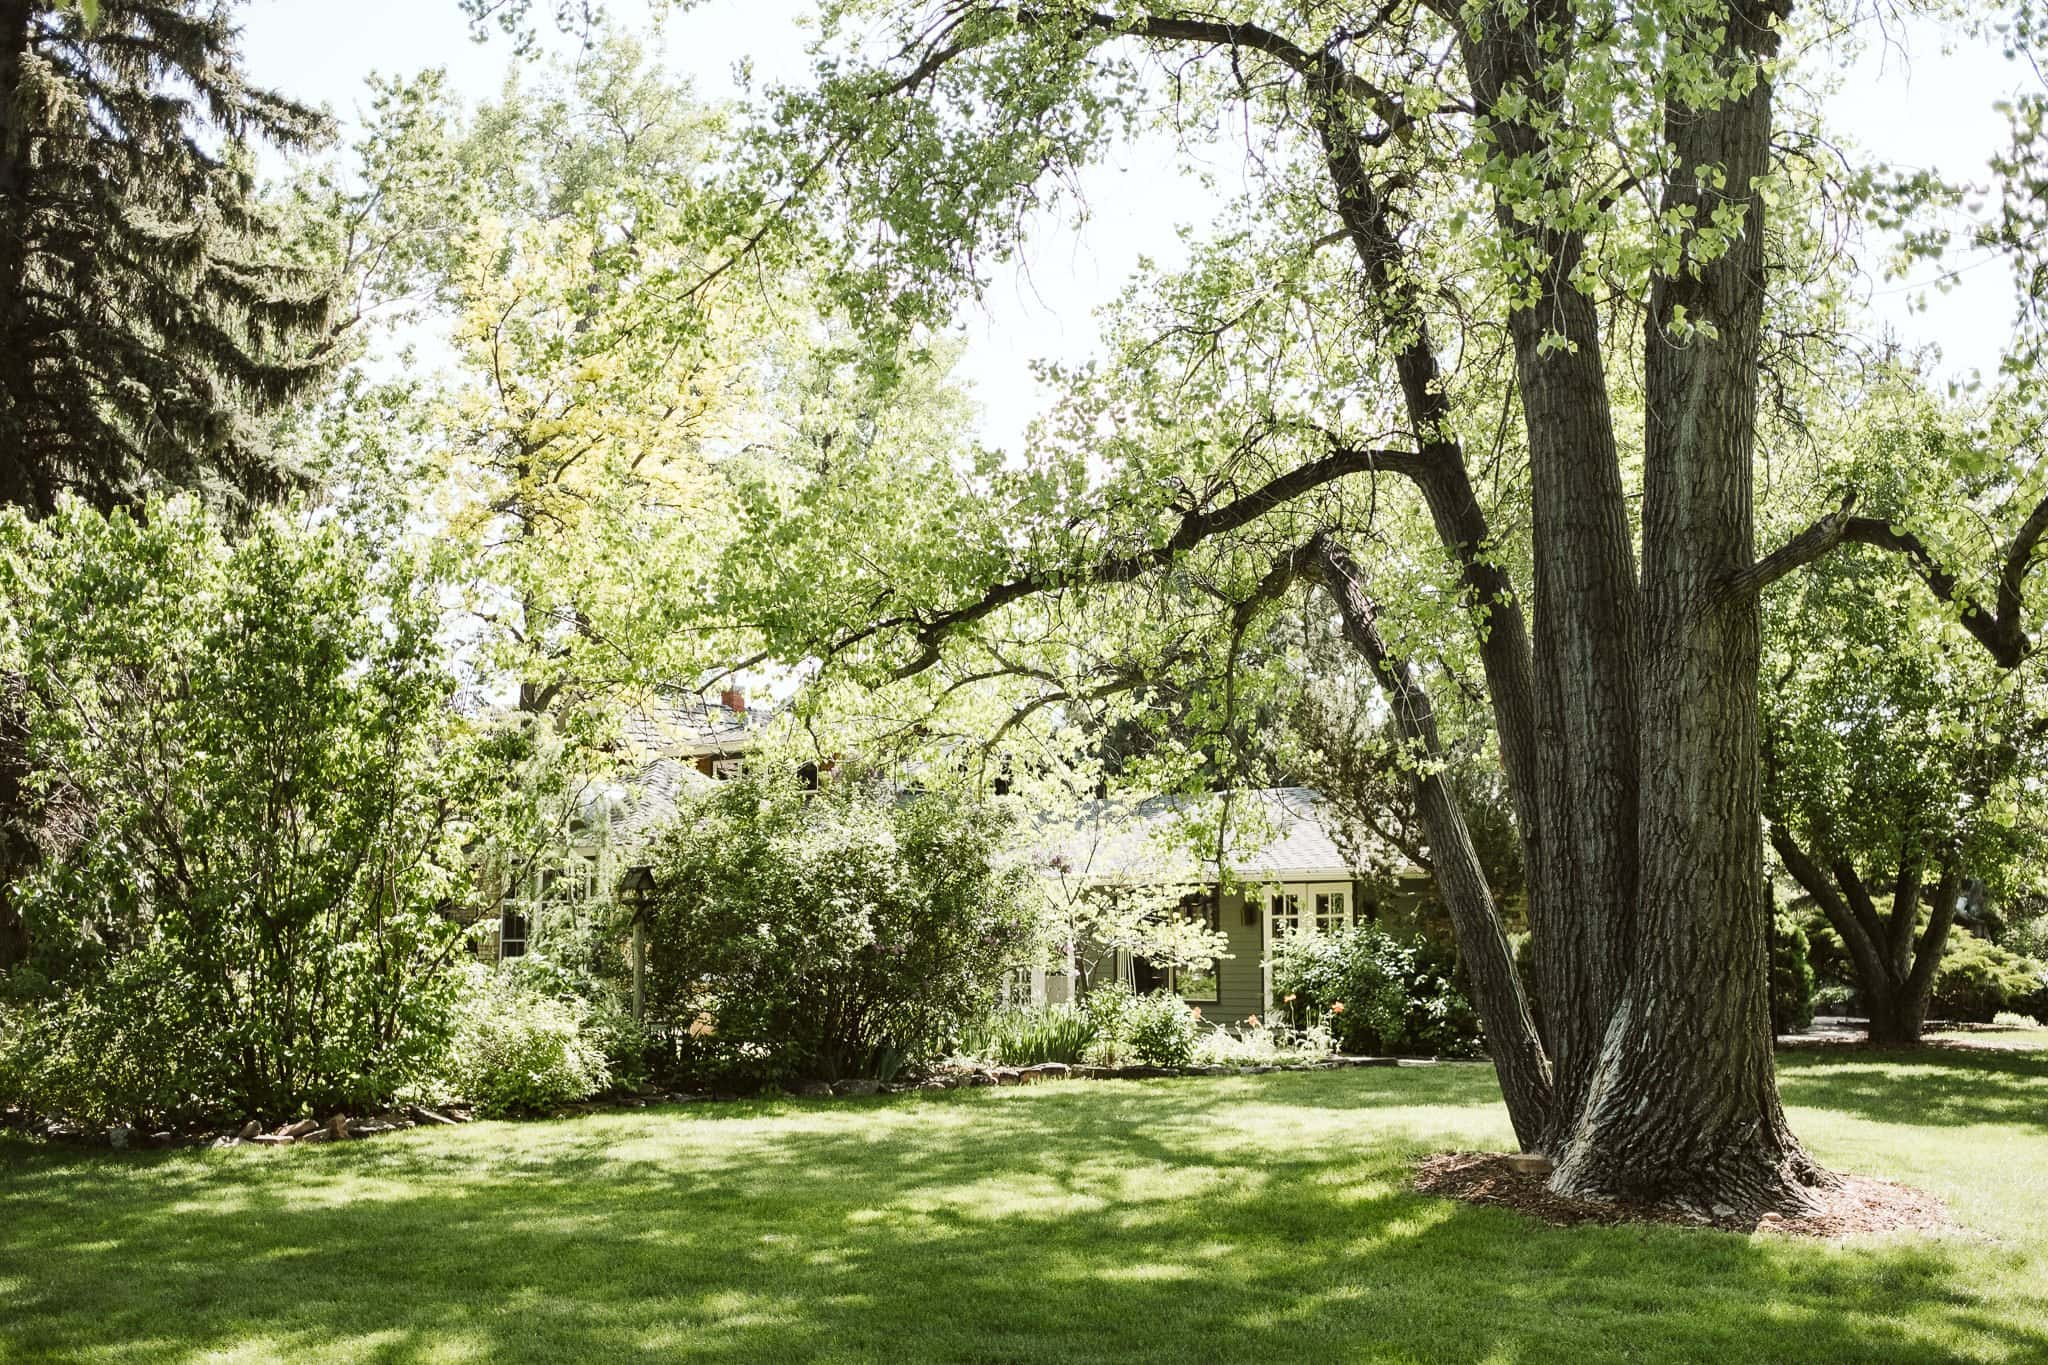 haystack-hearth-wedding-venue-niwot-10